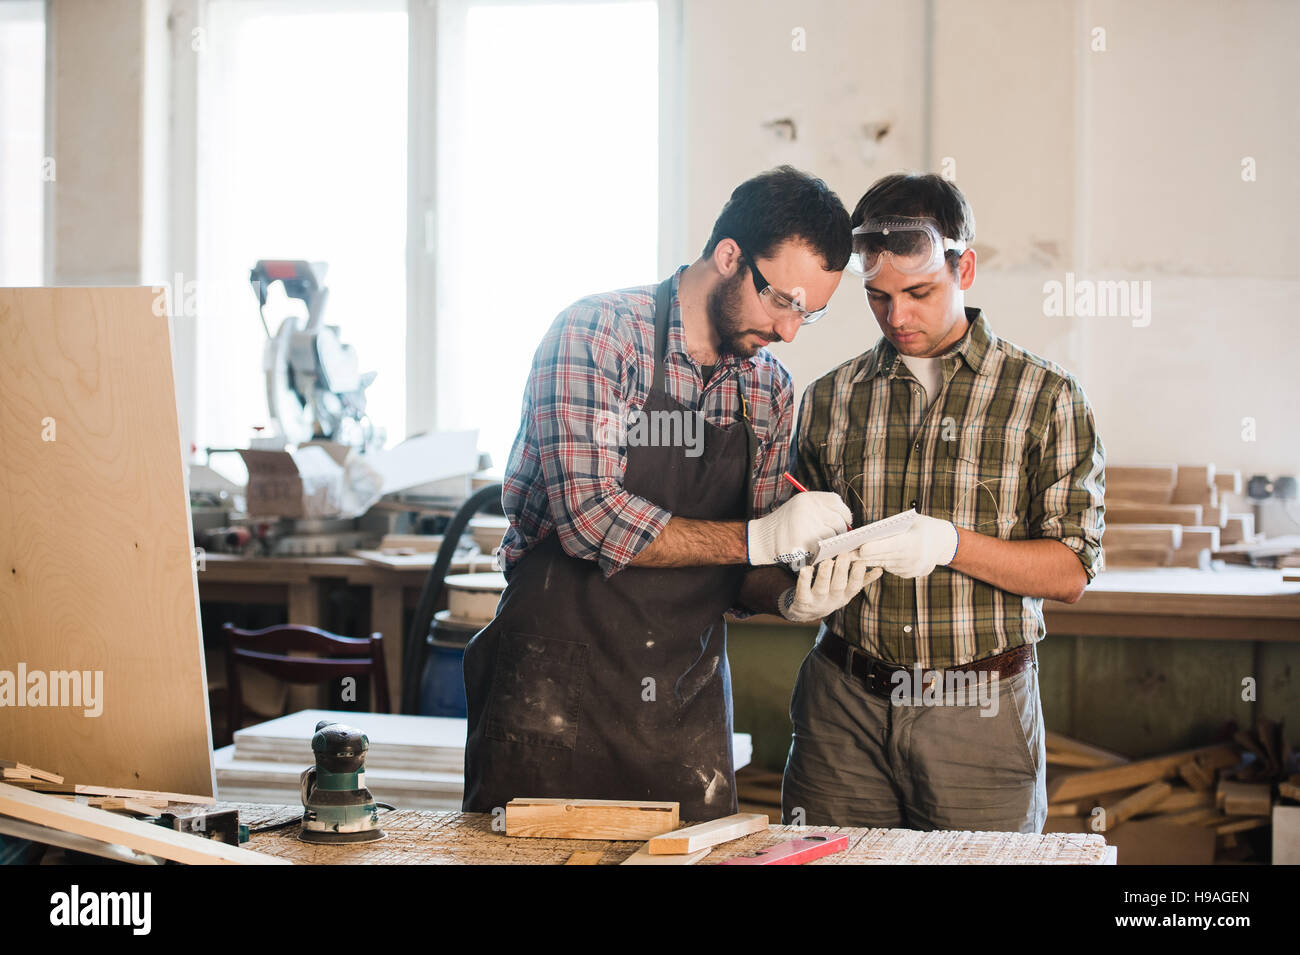 two man polishes boards. carpenter with a sander - Stock Image